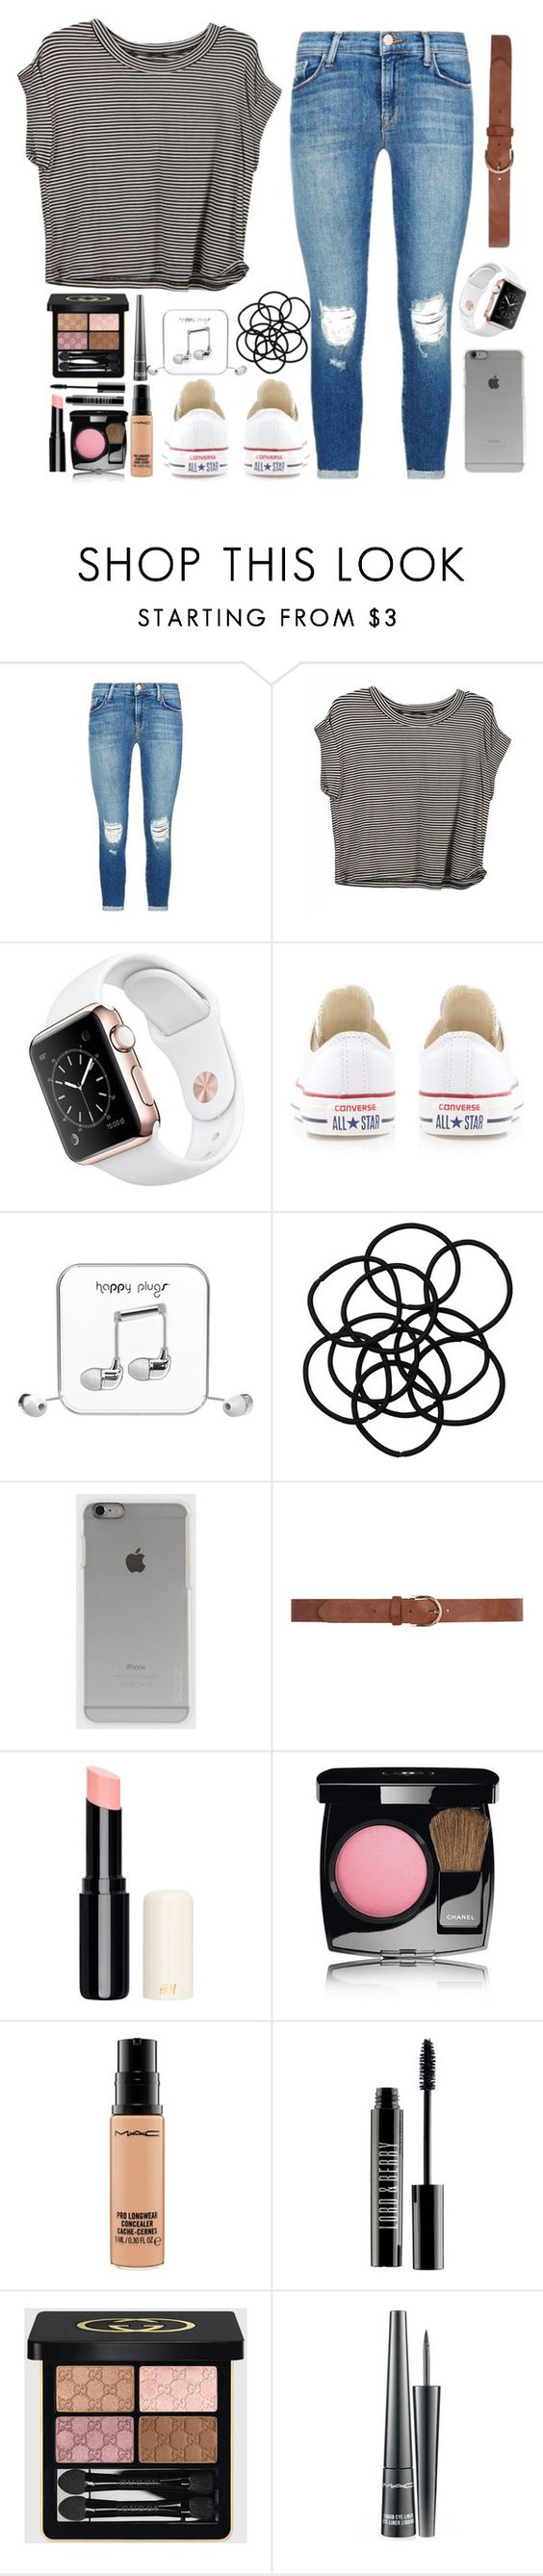 """""""Is it to late now to say sorry..."""" by caro3302 ❤ liked on Polyvore featuring J Brand, Converse, Happy Plugs, Monki, Incase, Dorothy Perkins, Chanel, MAC Cosmetics, Lord & Berry and Gucci"""